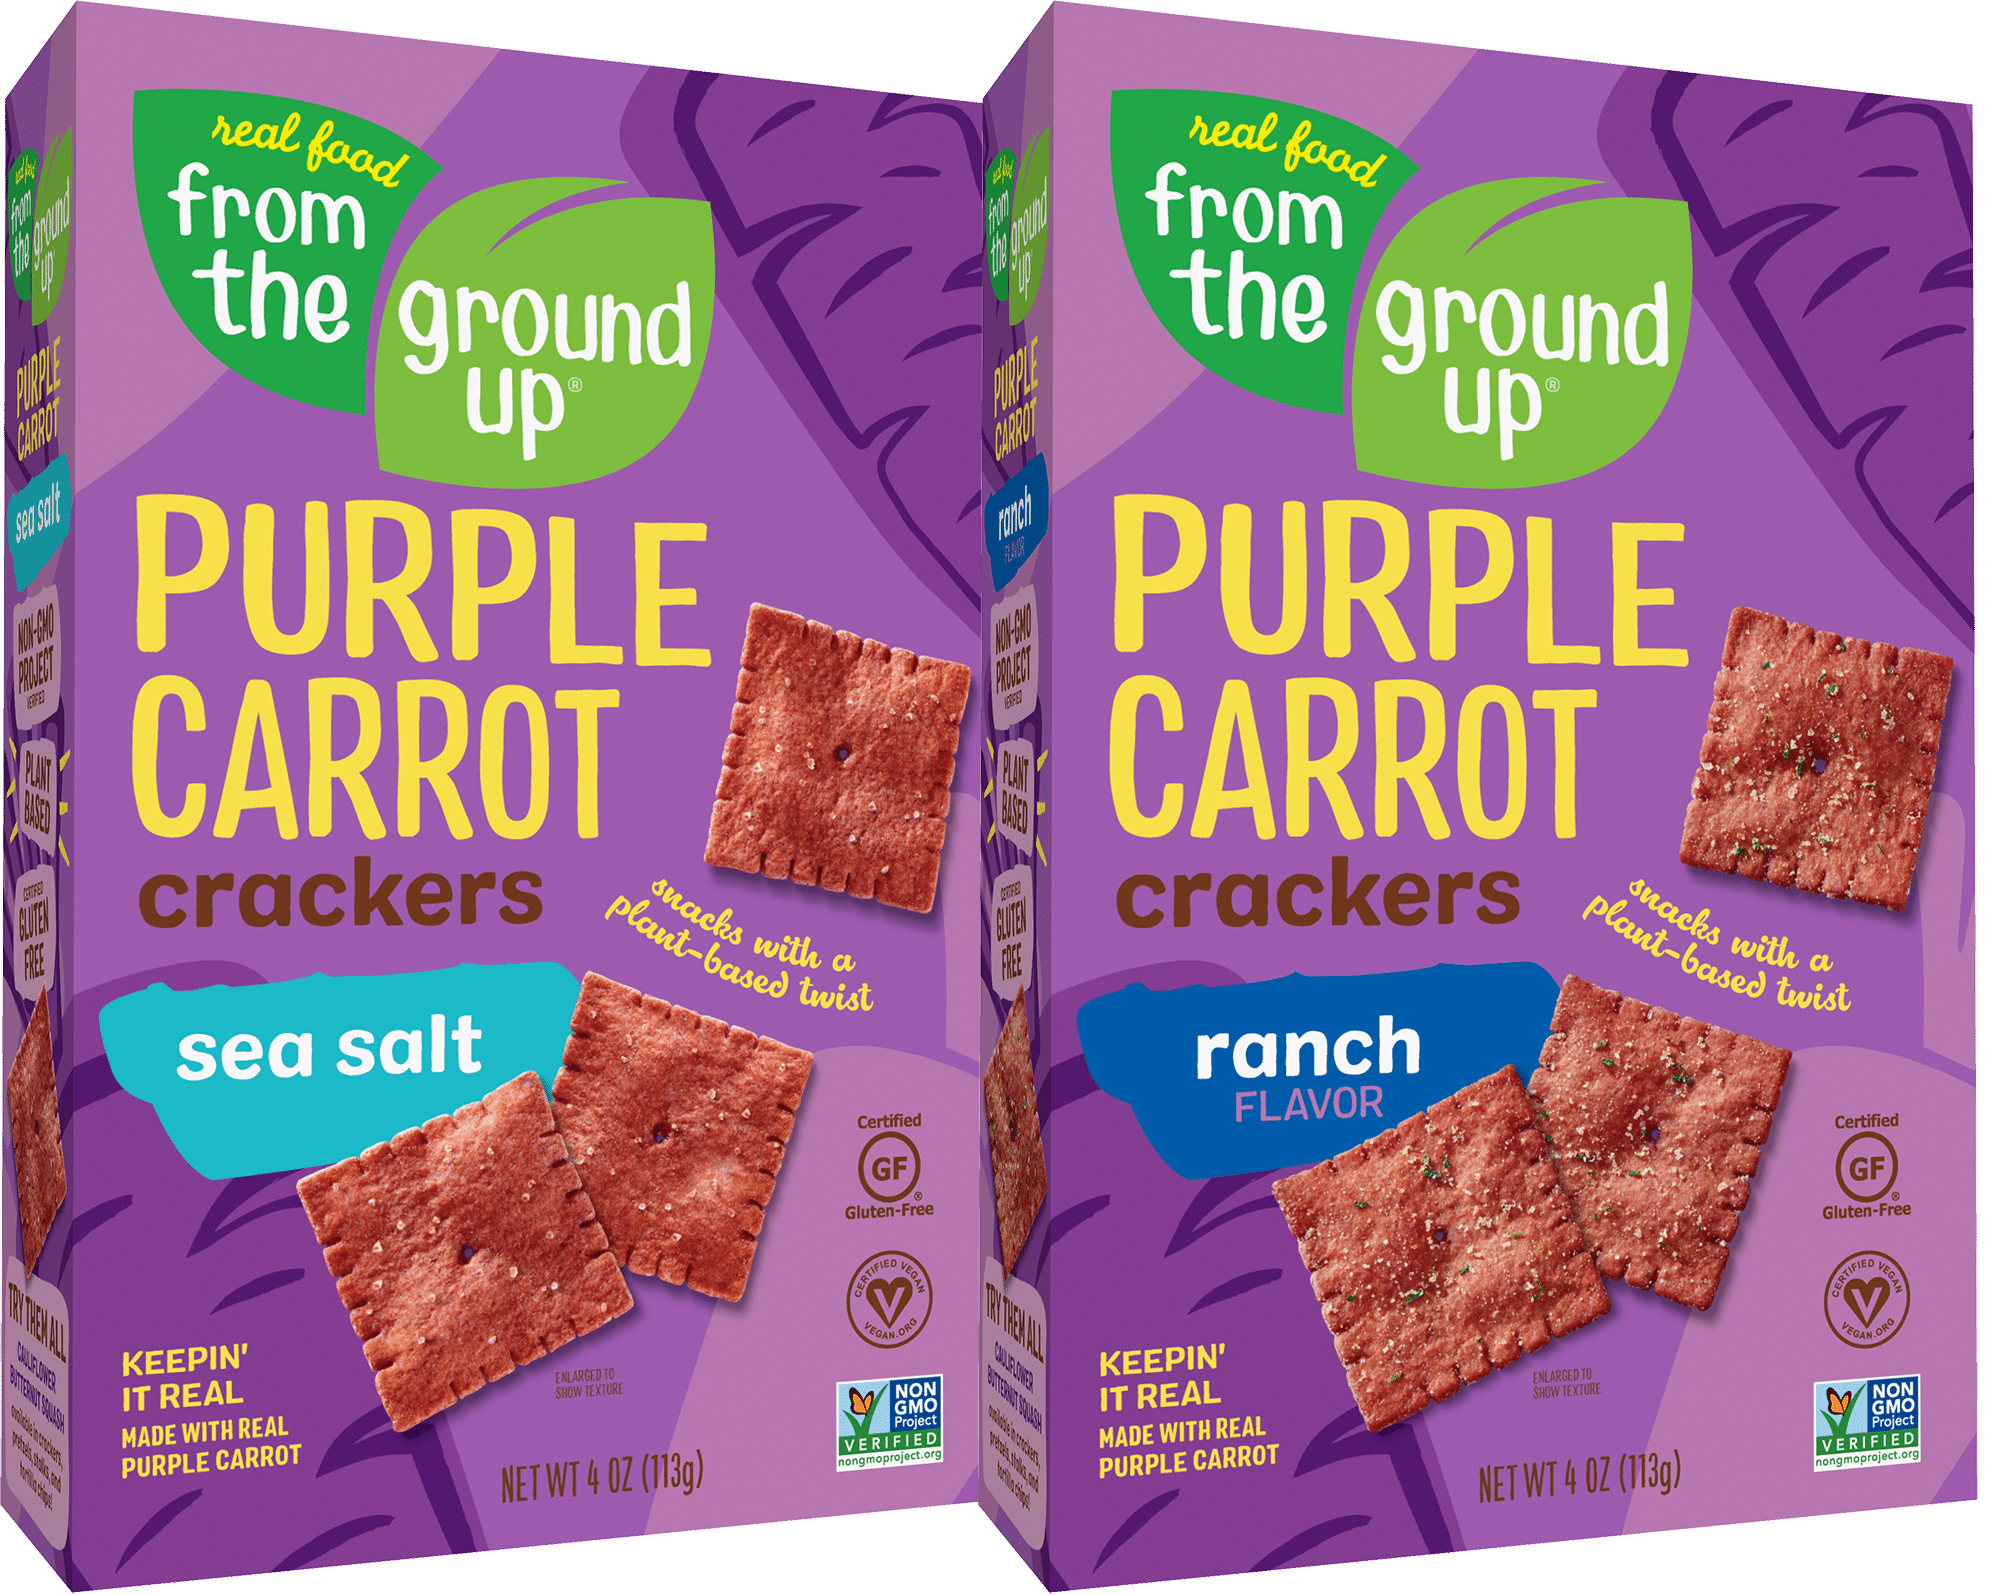 Real Food From The Ground Up Adds New Veggie to the Crew with Purple Carrot Crackers